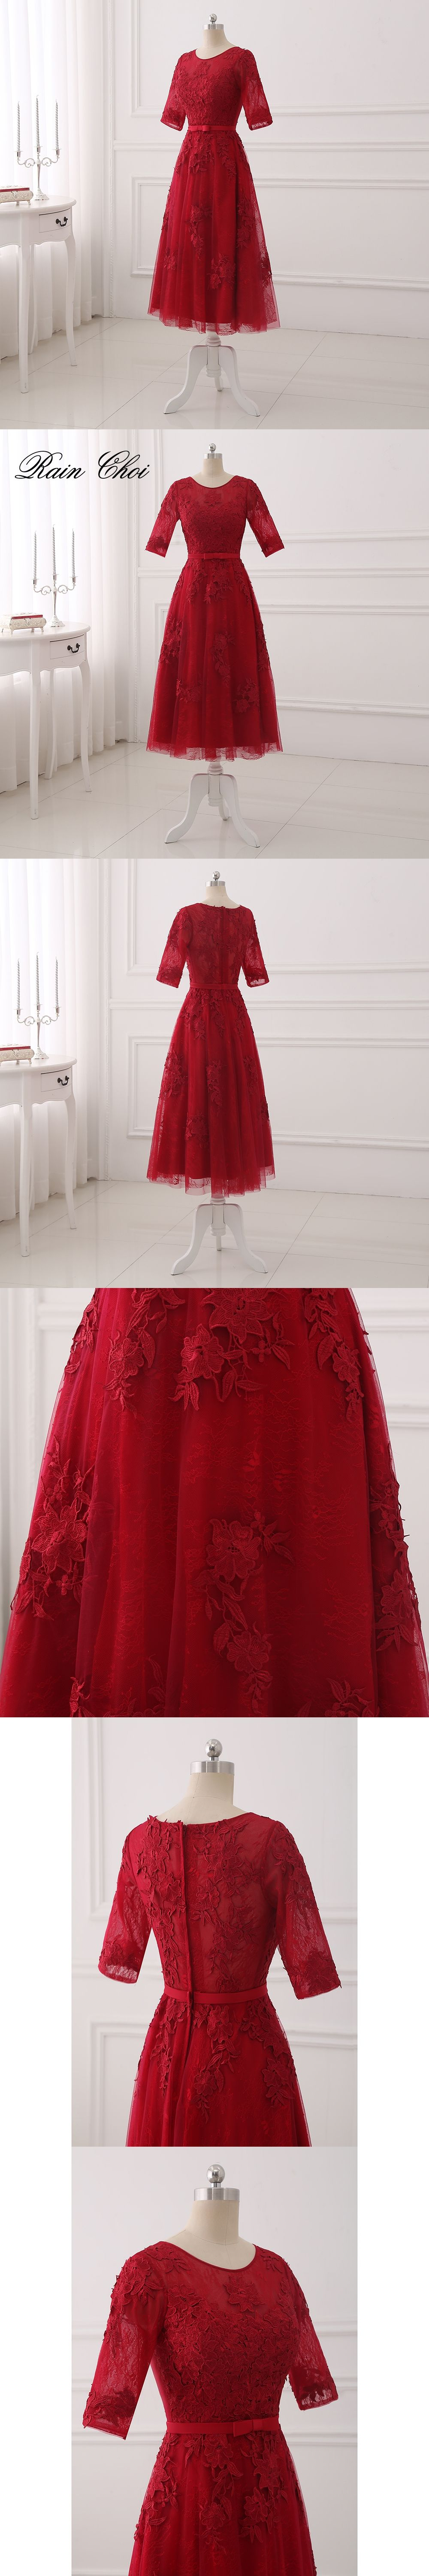 Red formal dresses aline short prom party gowns tea length evening